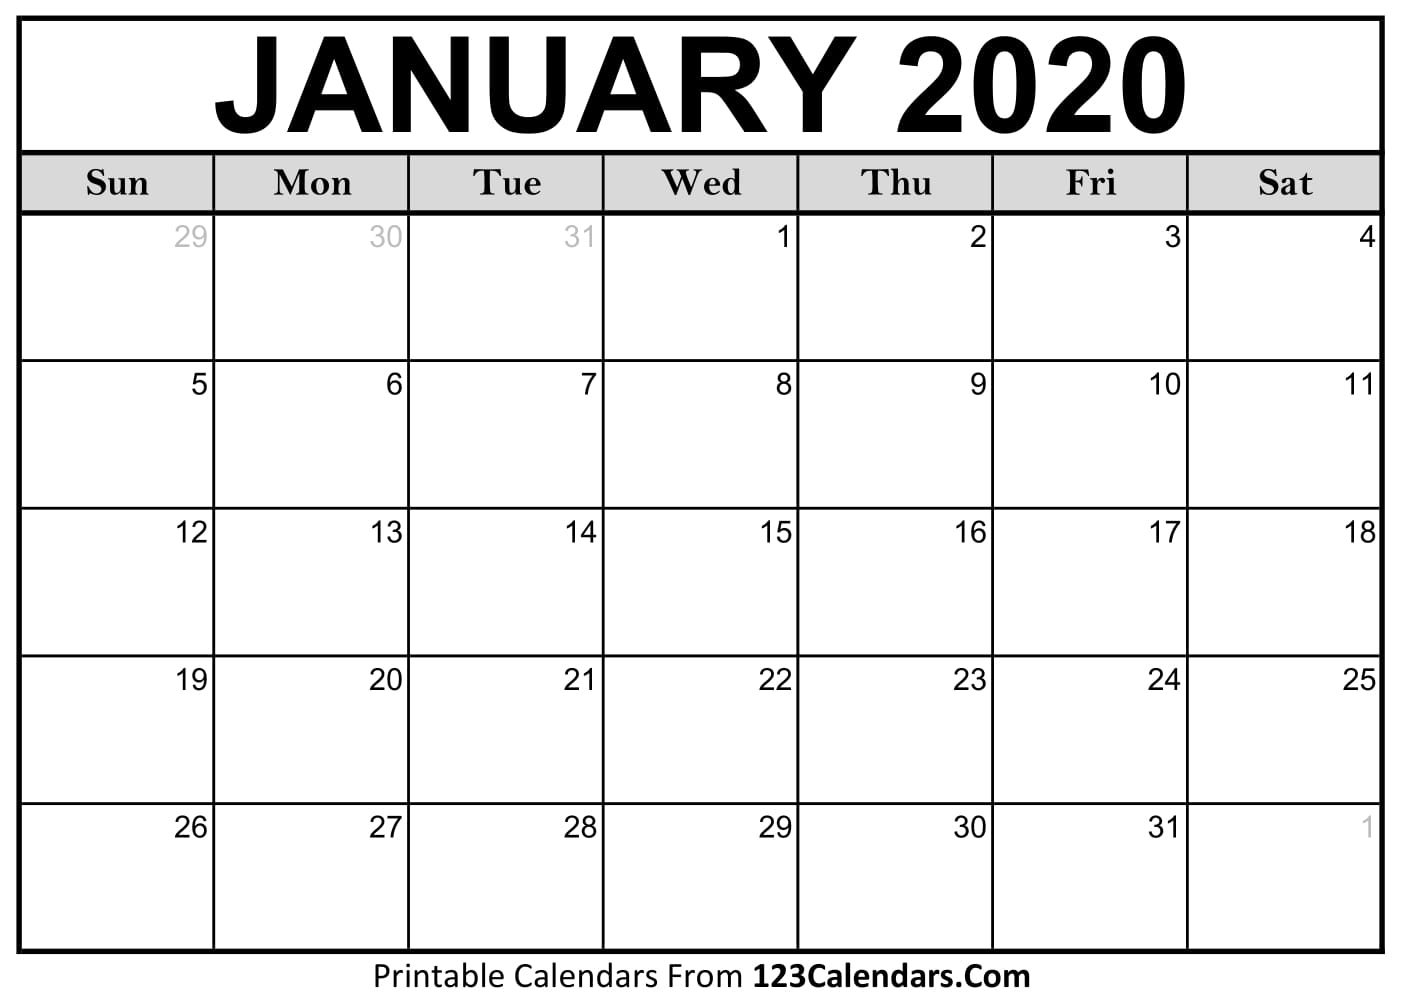 Free Printable Calendar | 123Calendars-Printabe Monthly